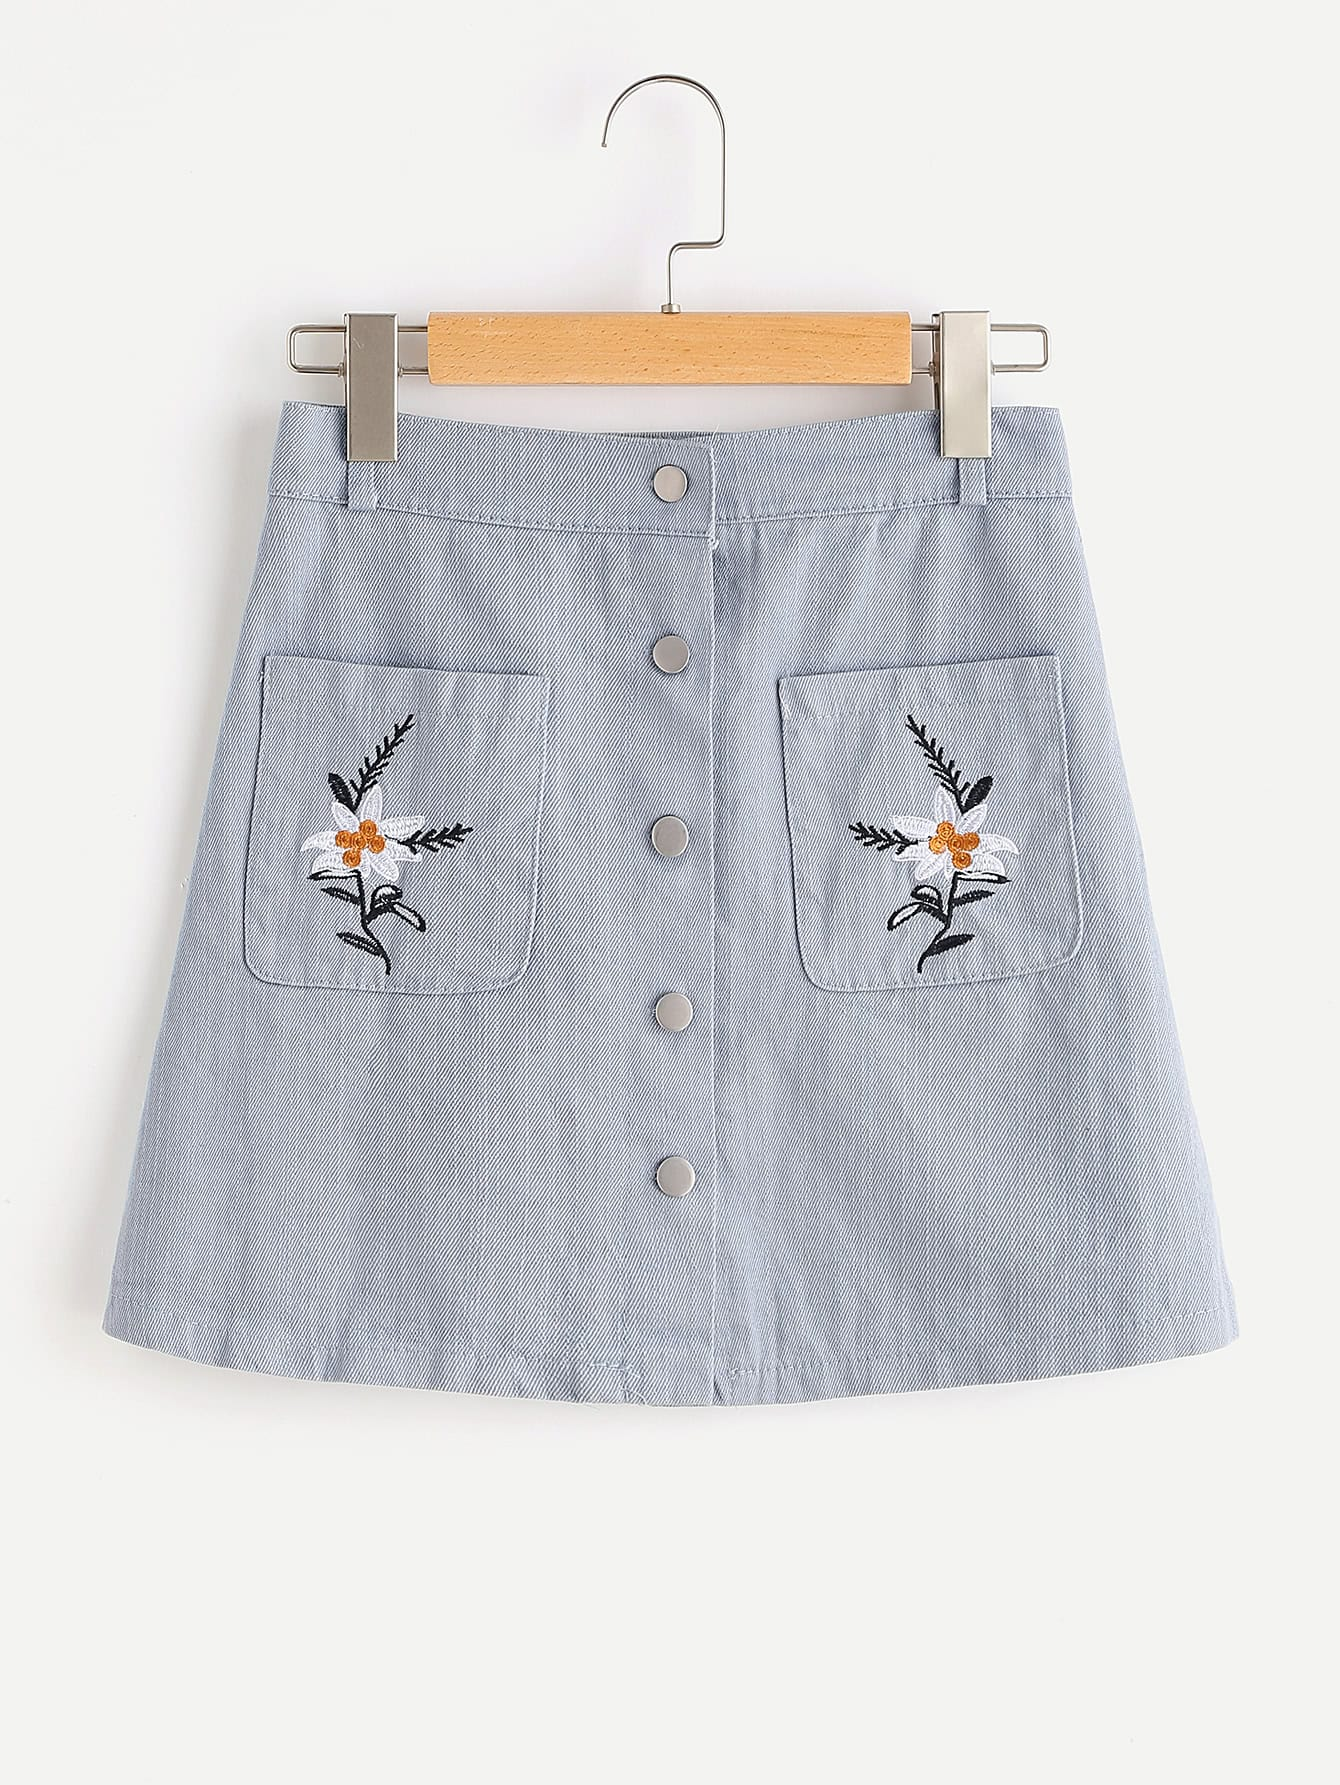 Flower Embroidered Single Breasted Skirt